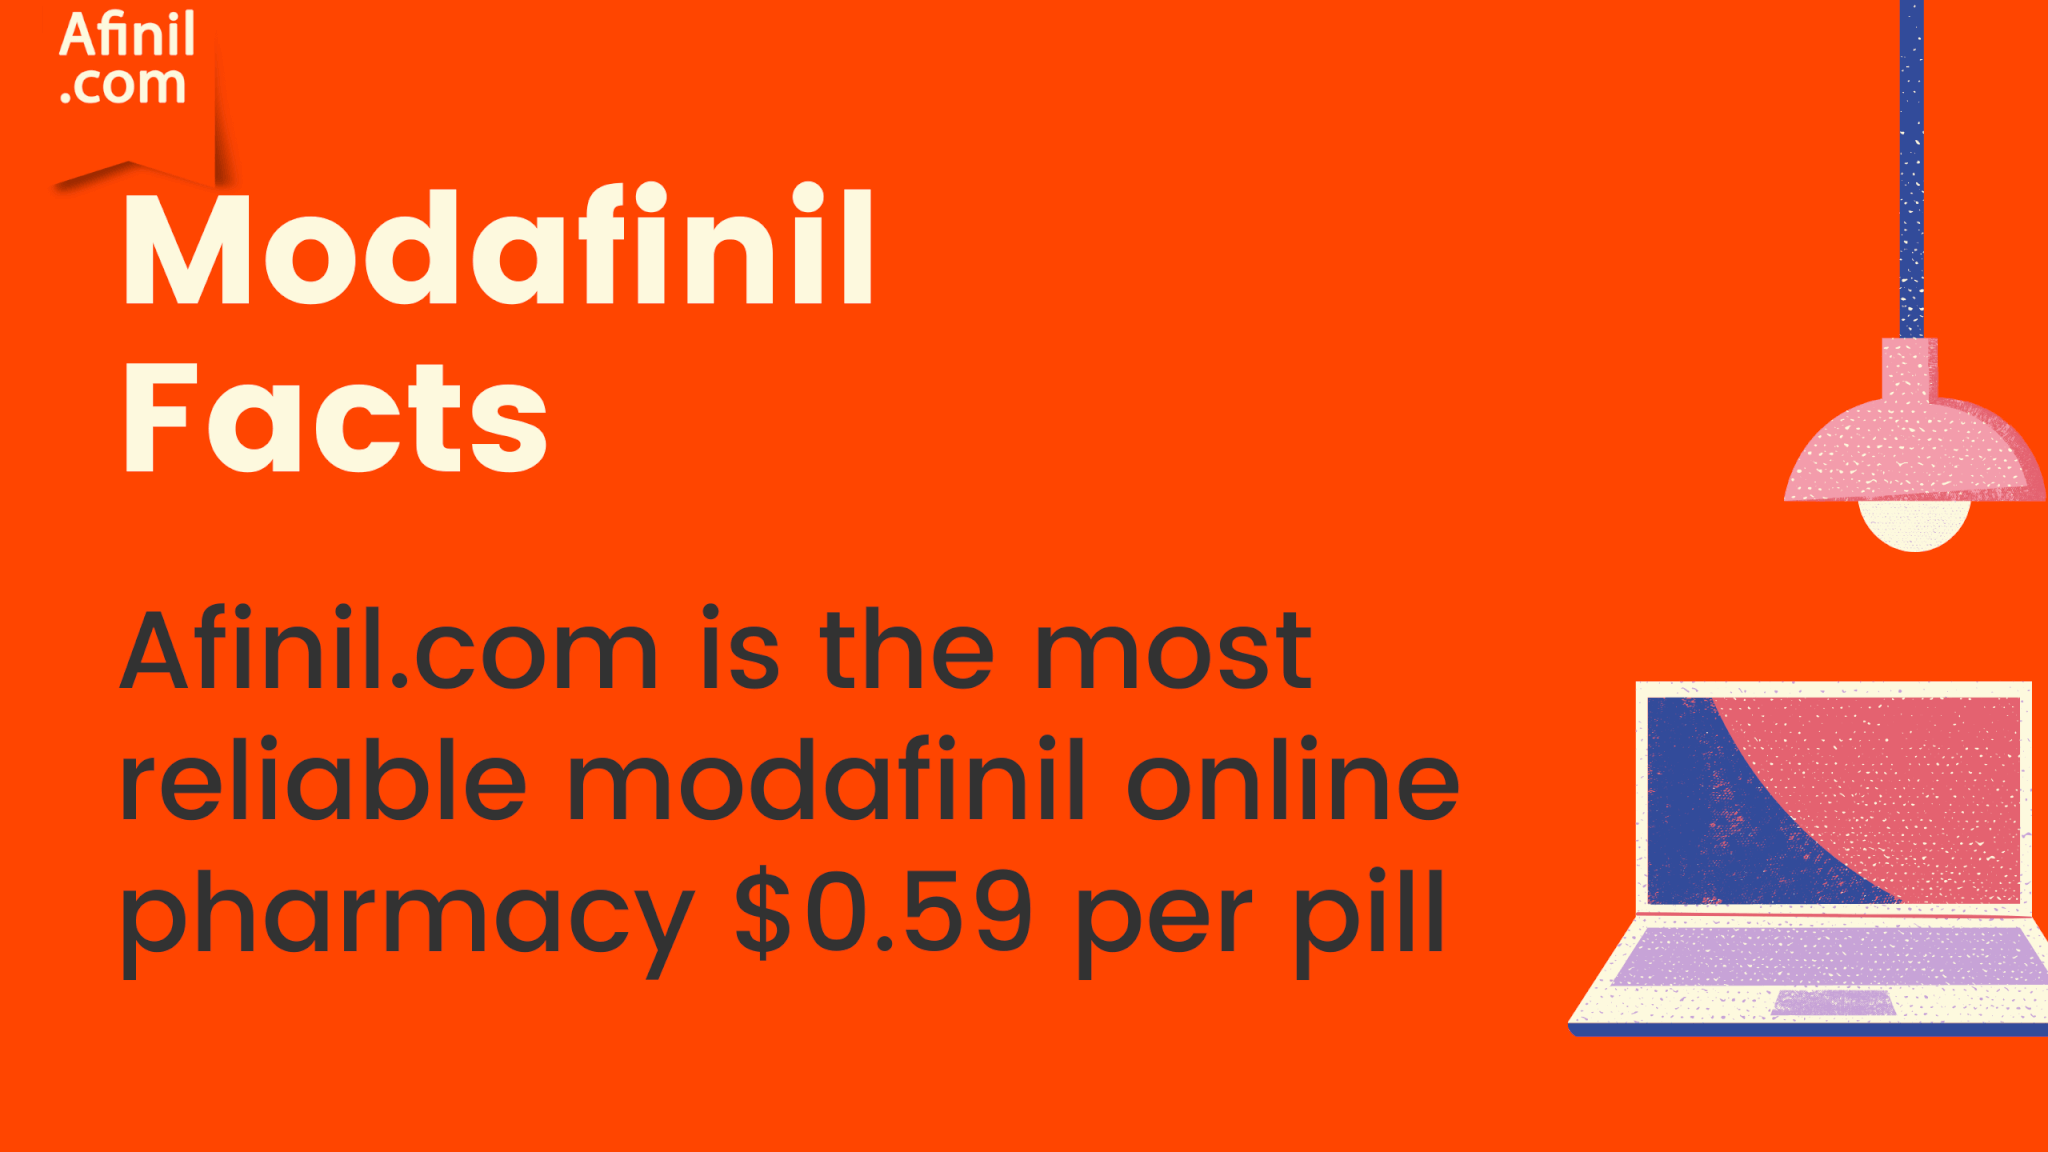 Modafinil Facts